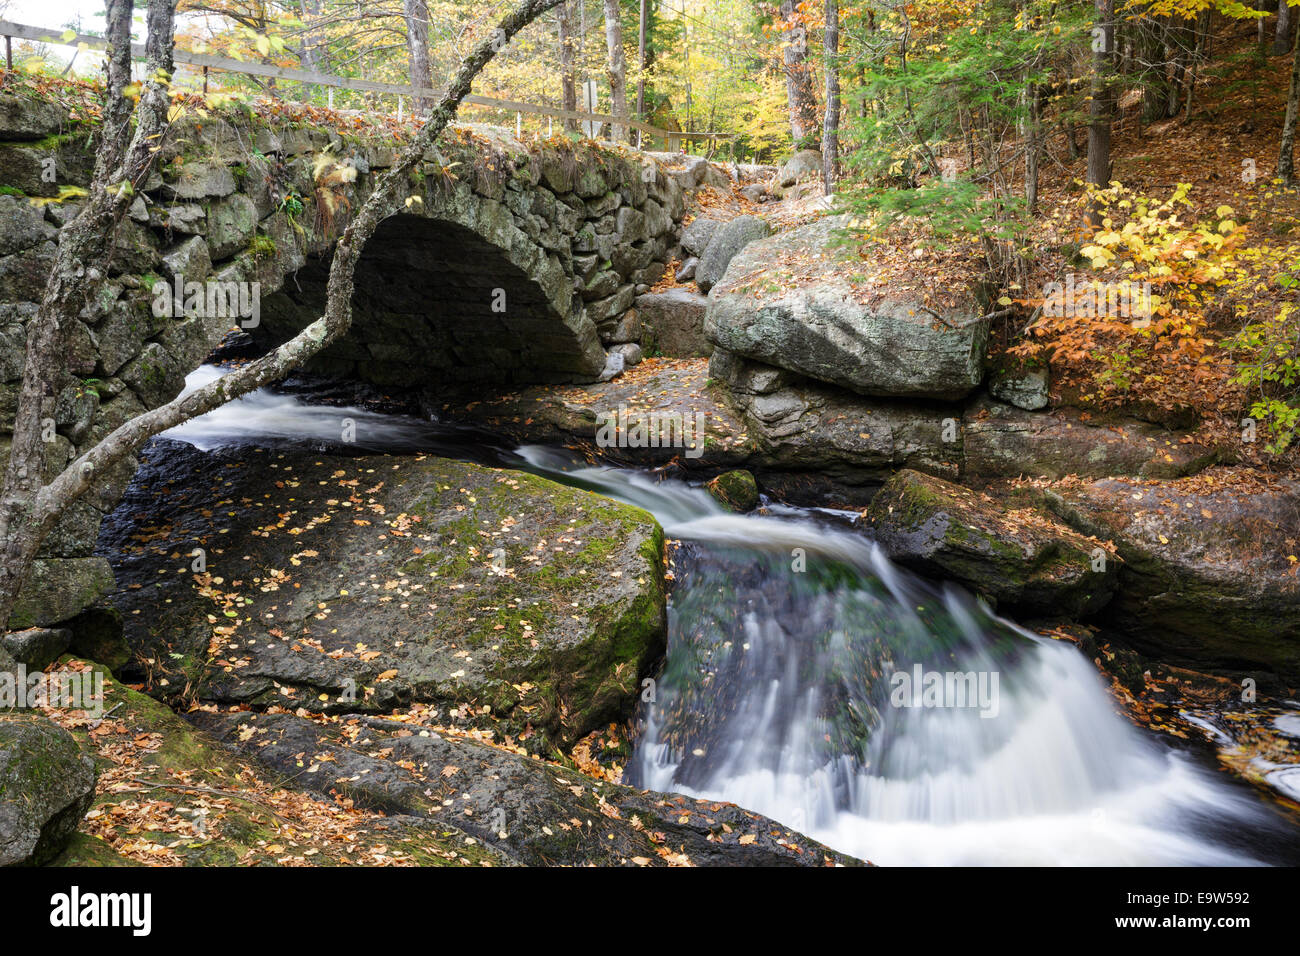 Gleason Falls Bridge which spans Beard Brook in Hillsborough, New Hampshire USA during the autumn months. - Stock Image